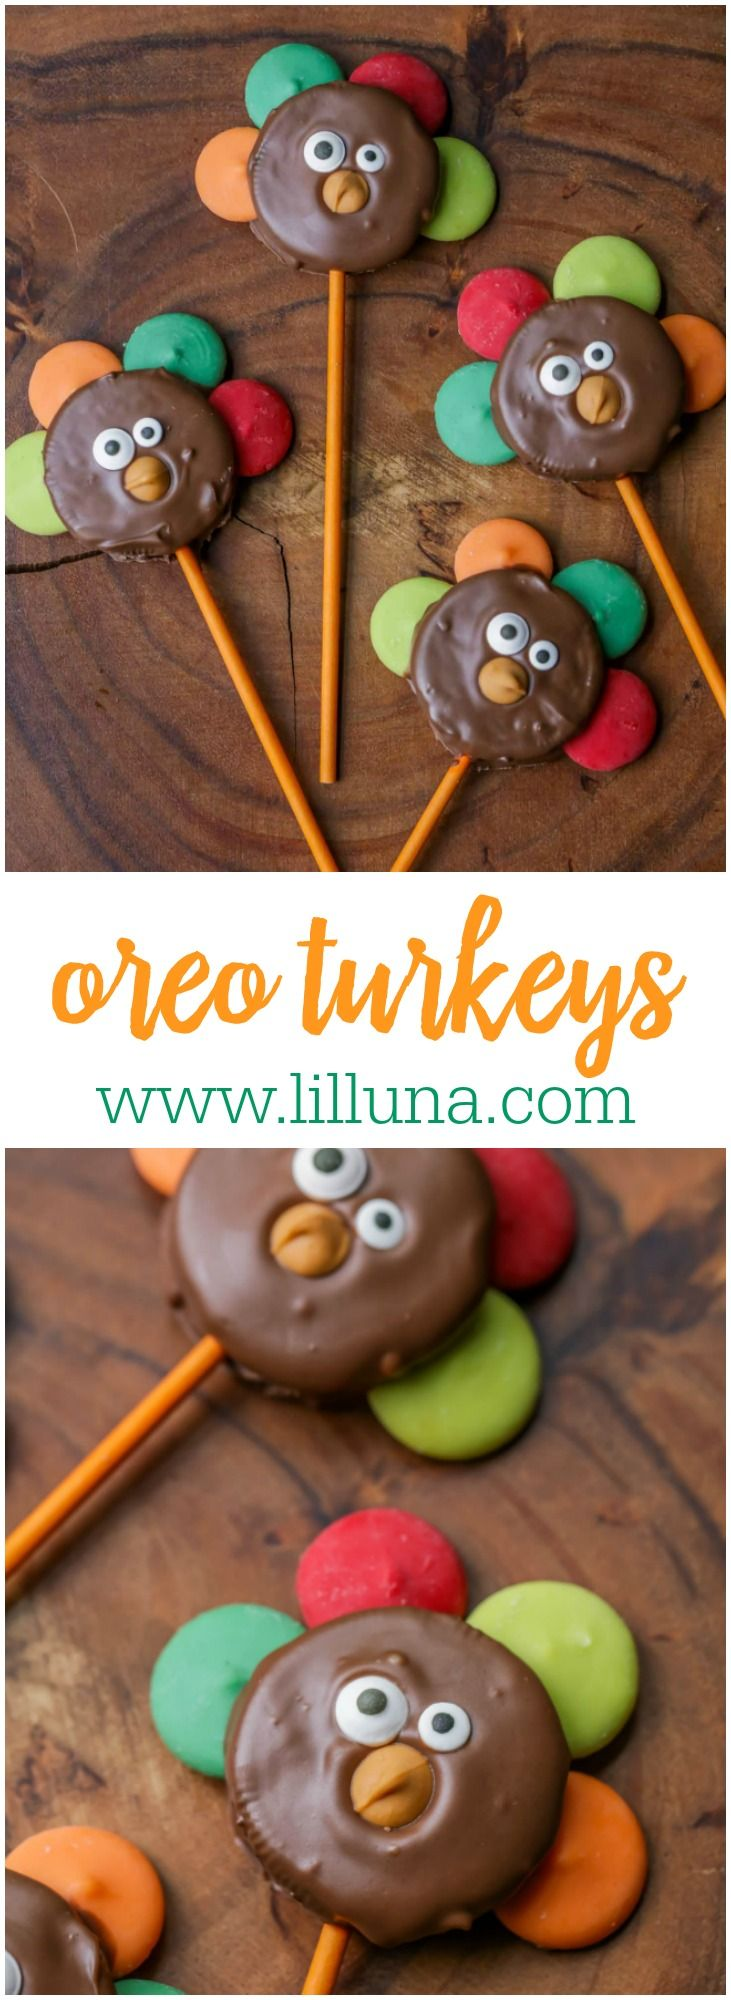 Oreo Turkeys - chocolate dipped oreos with candy melts as feathers, candy eyes and a butterscotch chip beak. Kids love these!